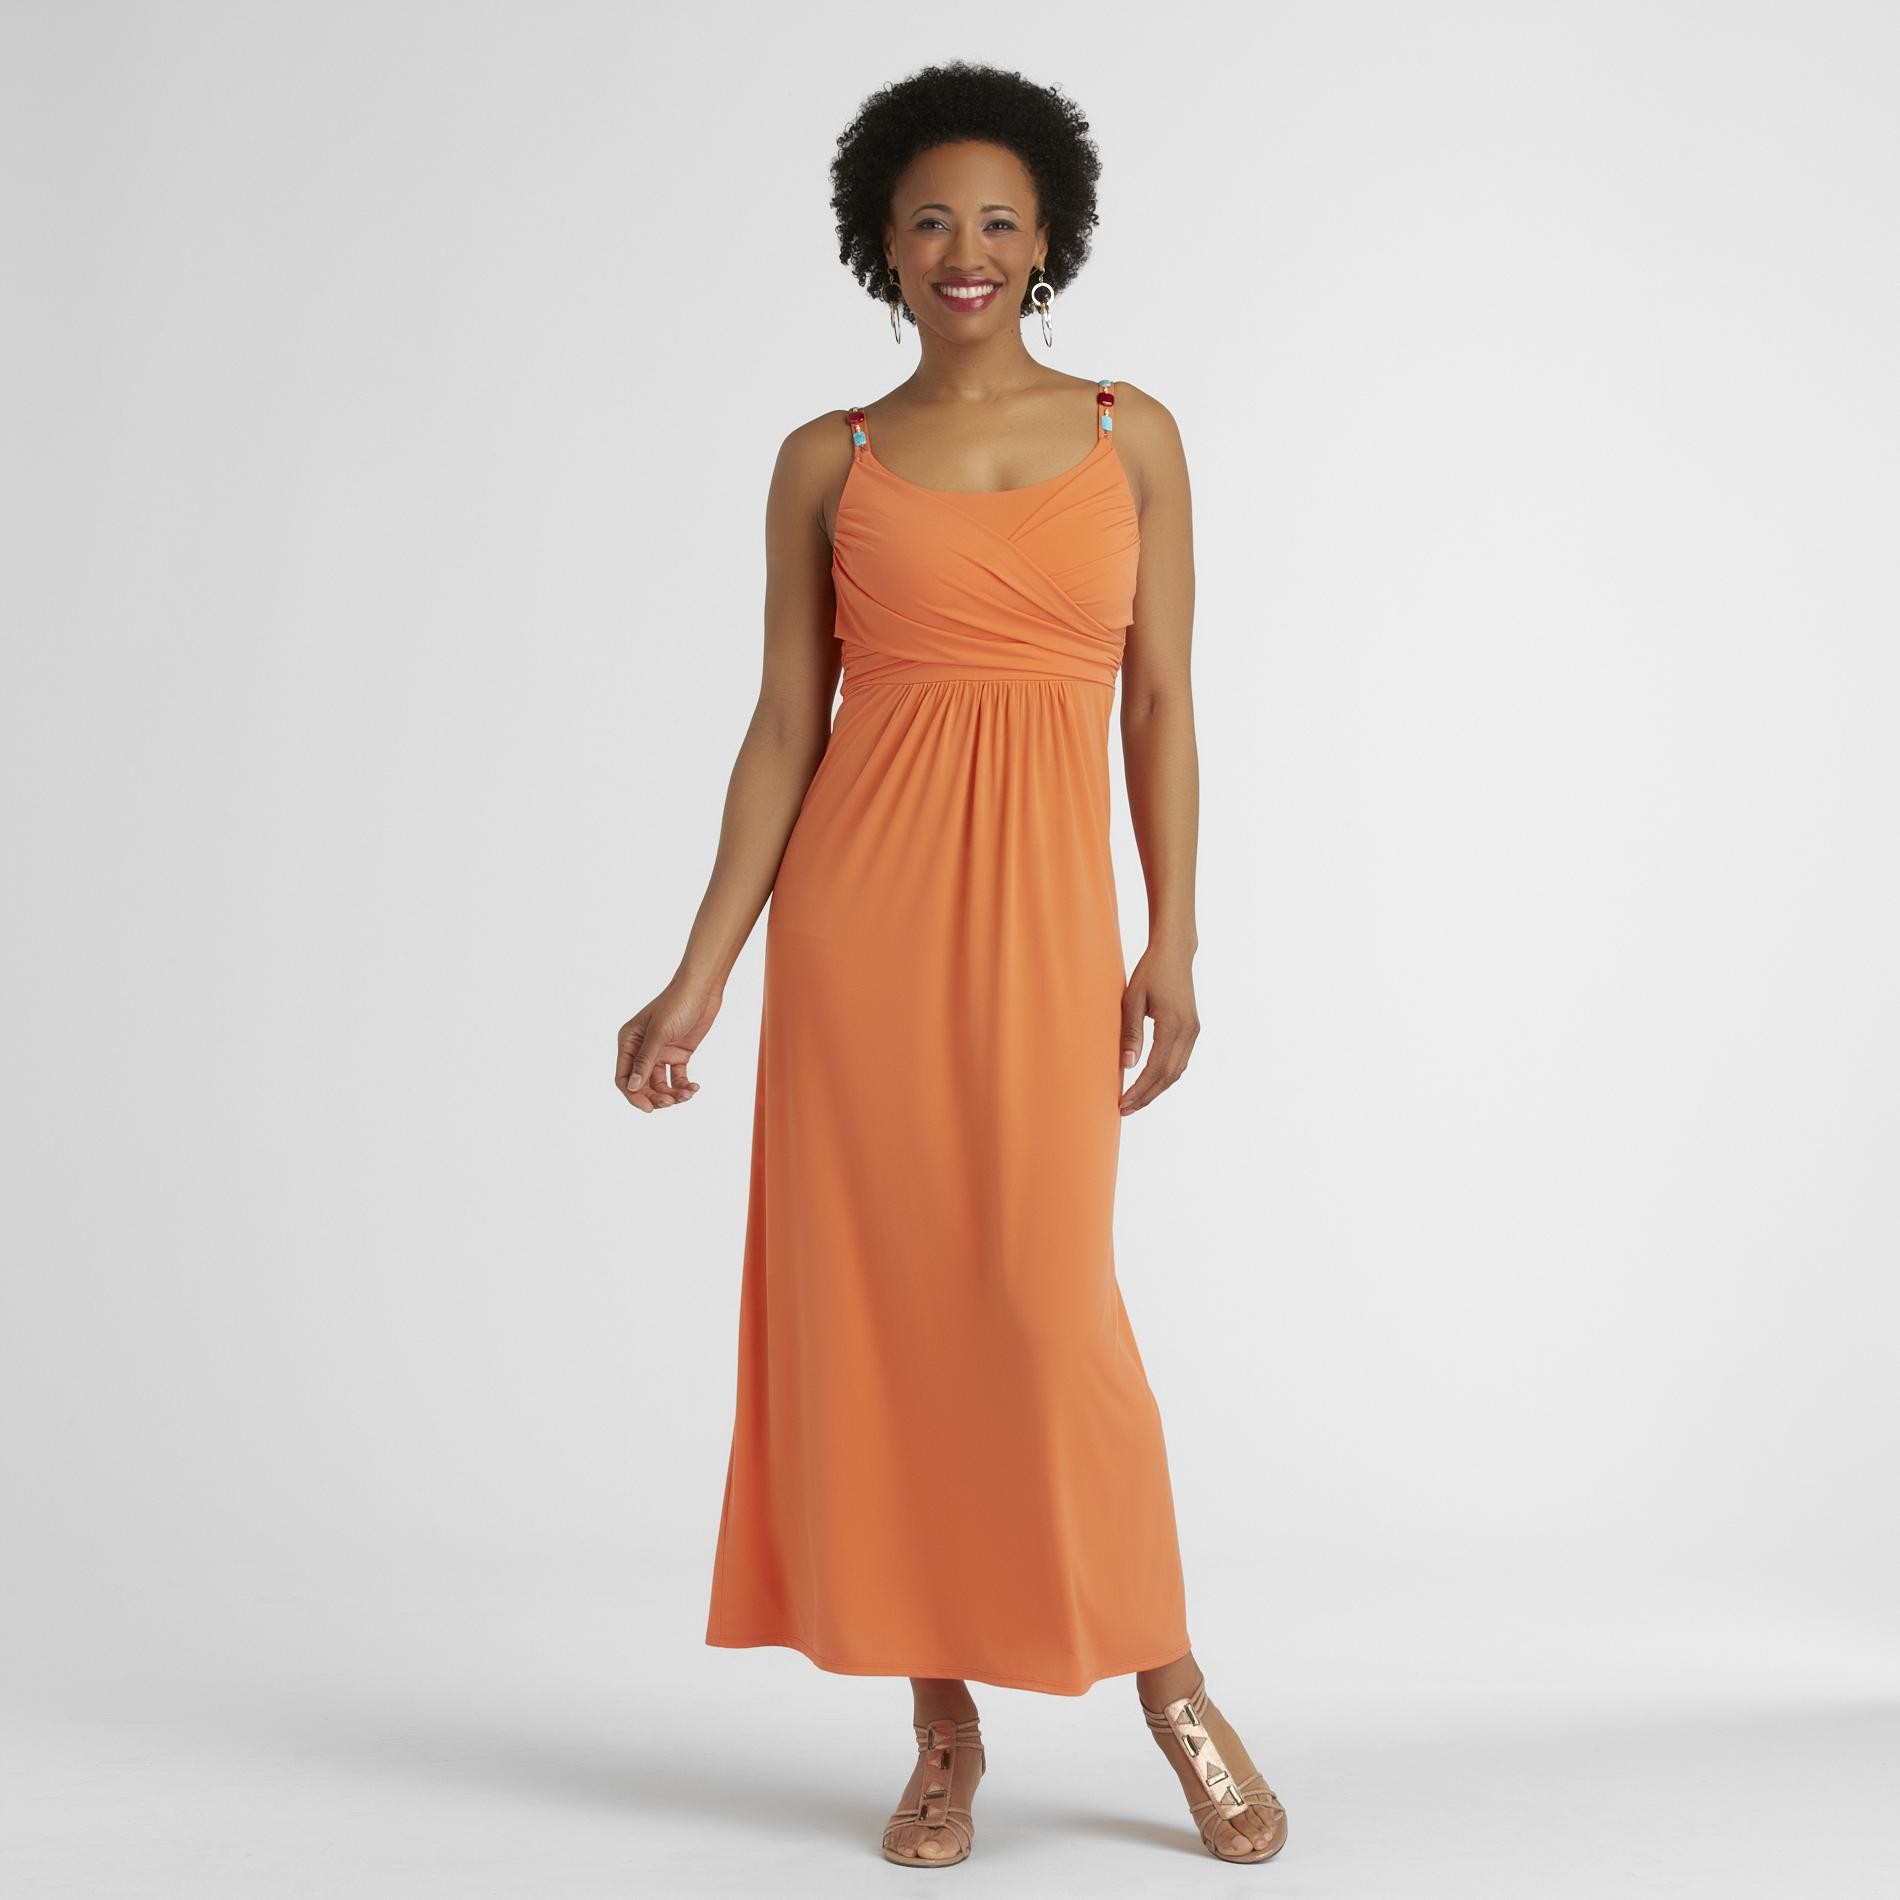 Jaclyn Smith Women's Maxi Dress - Beaded at Kmart.com